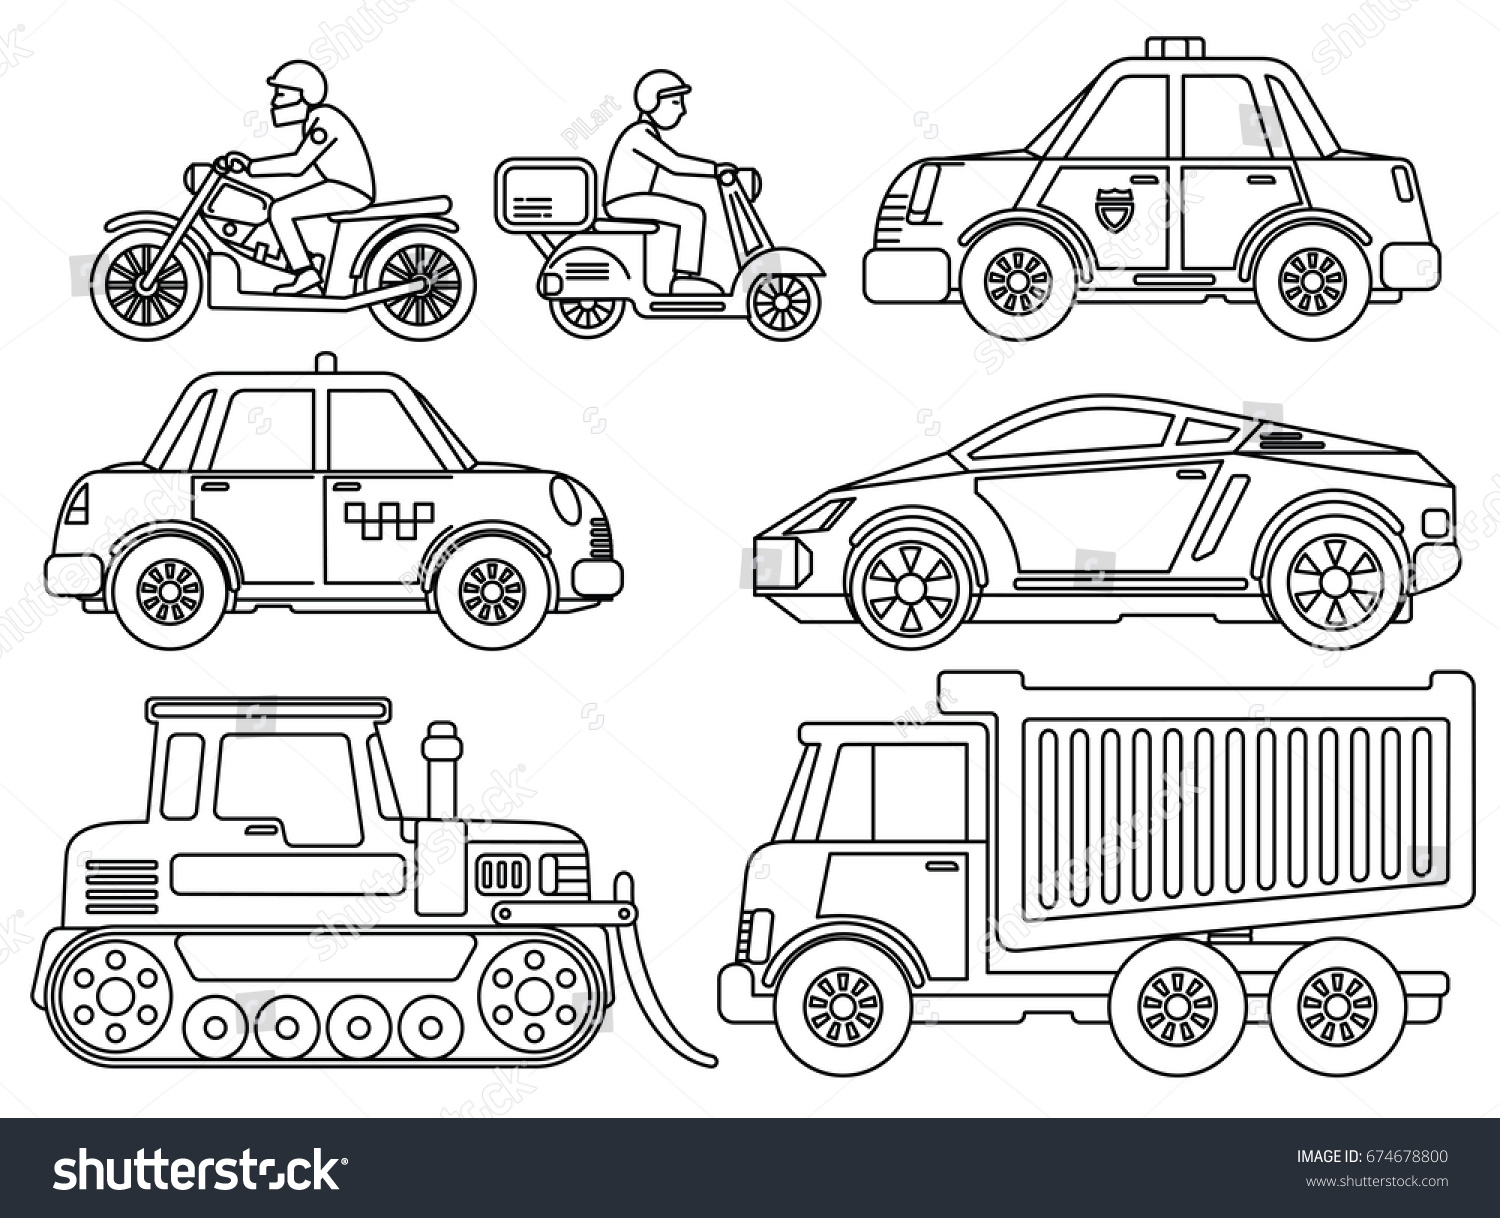 Coloring pictures of cars truck tractors - Coloring Book For Kids Hand Drawn Cartoon Transport Cars Truck Bike